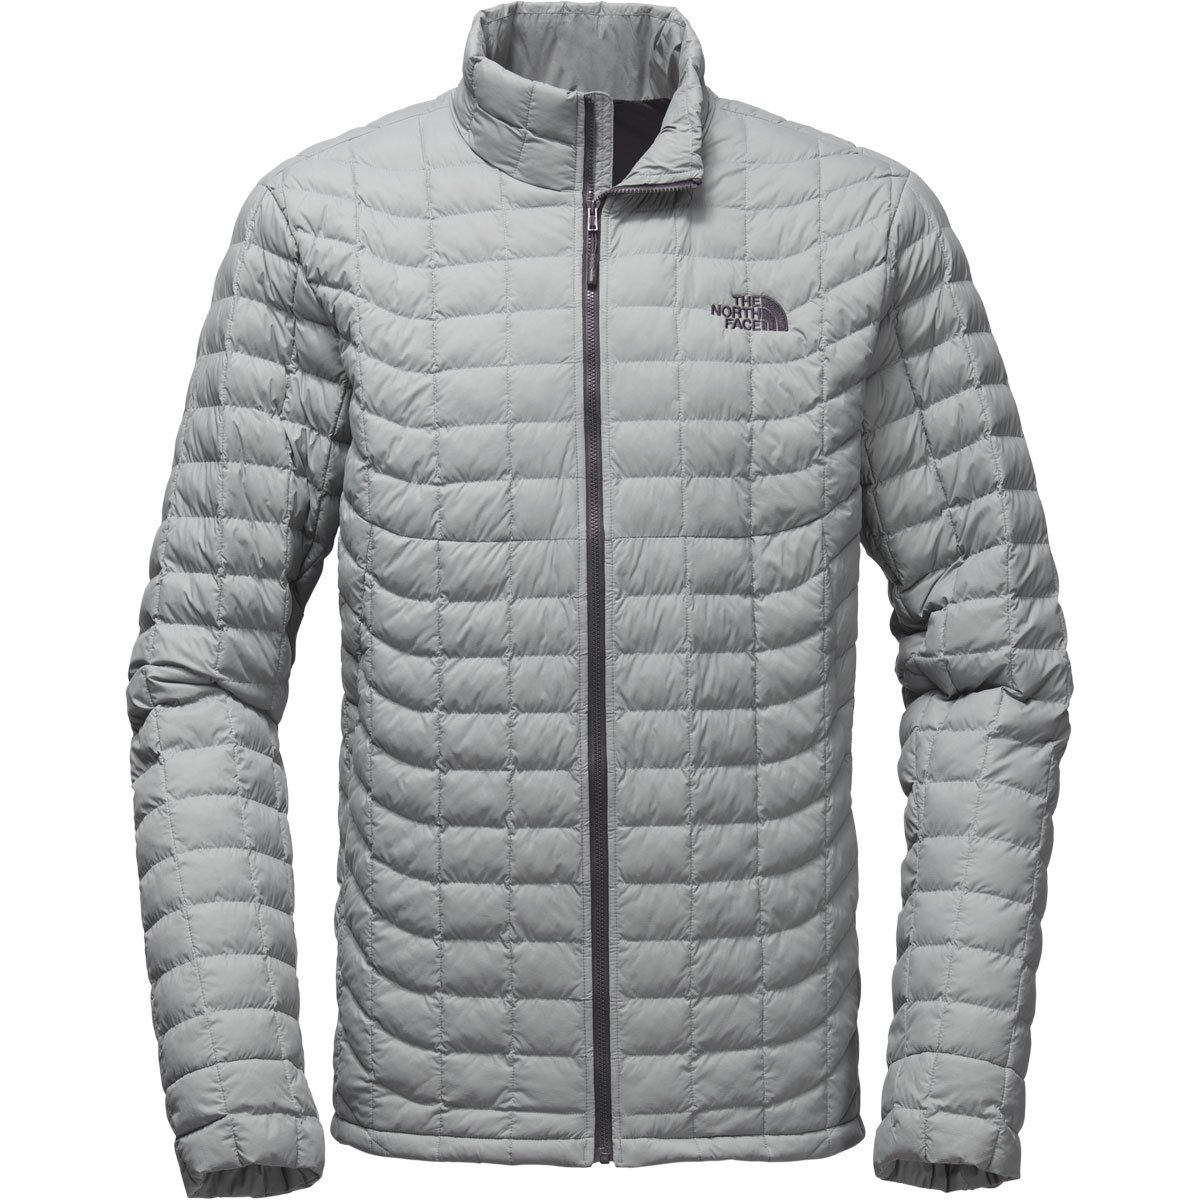 The North Face Men's Tall Thermoball Jacket Monument Grey Matte (Large) by The North Face